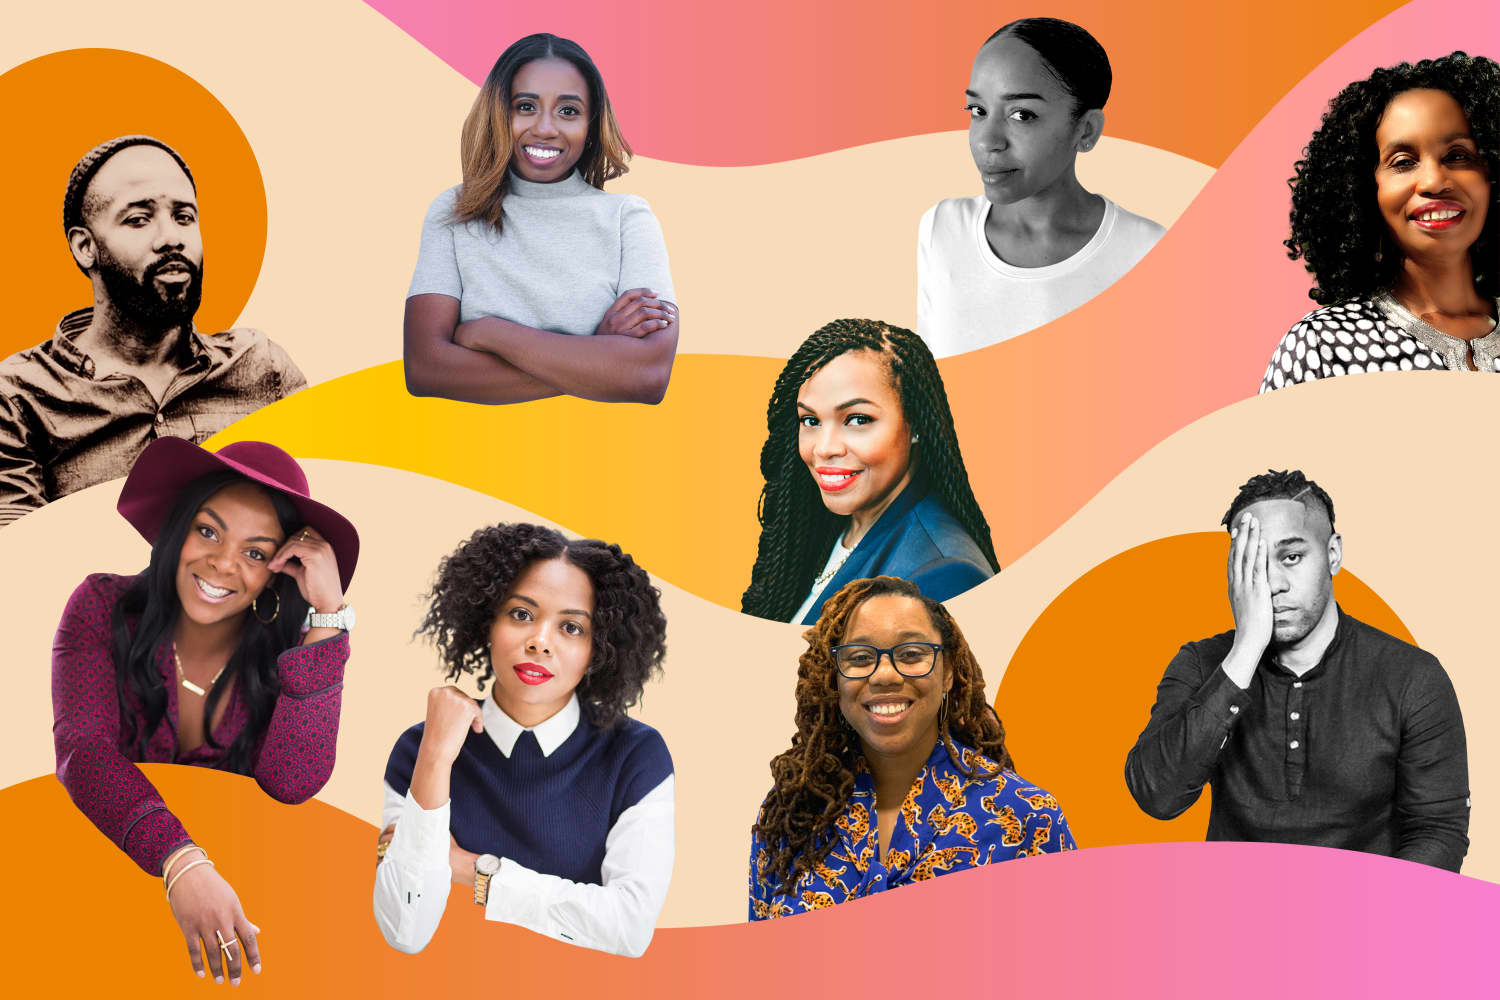 9 Black Design Professionals Share Their Thoughts on Diversity in Design